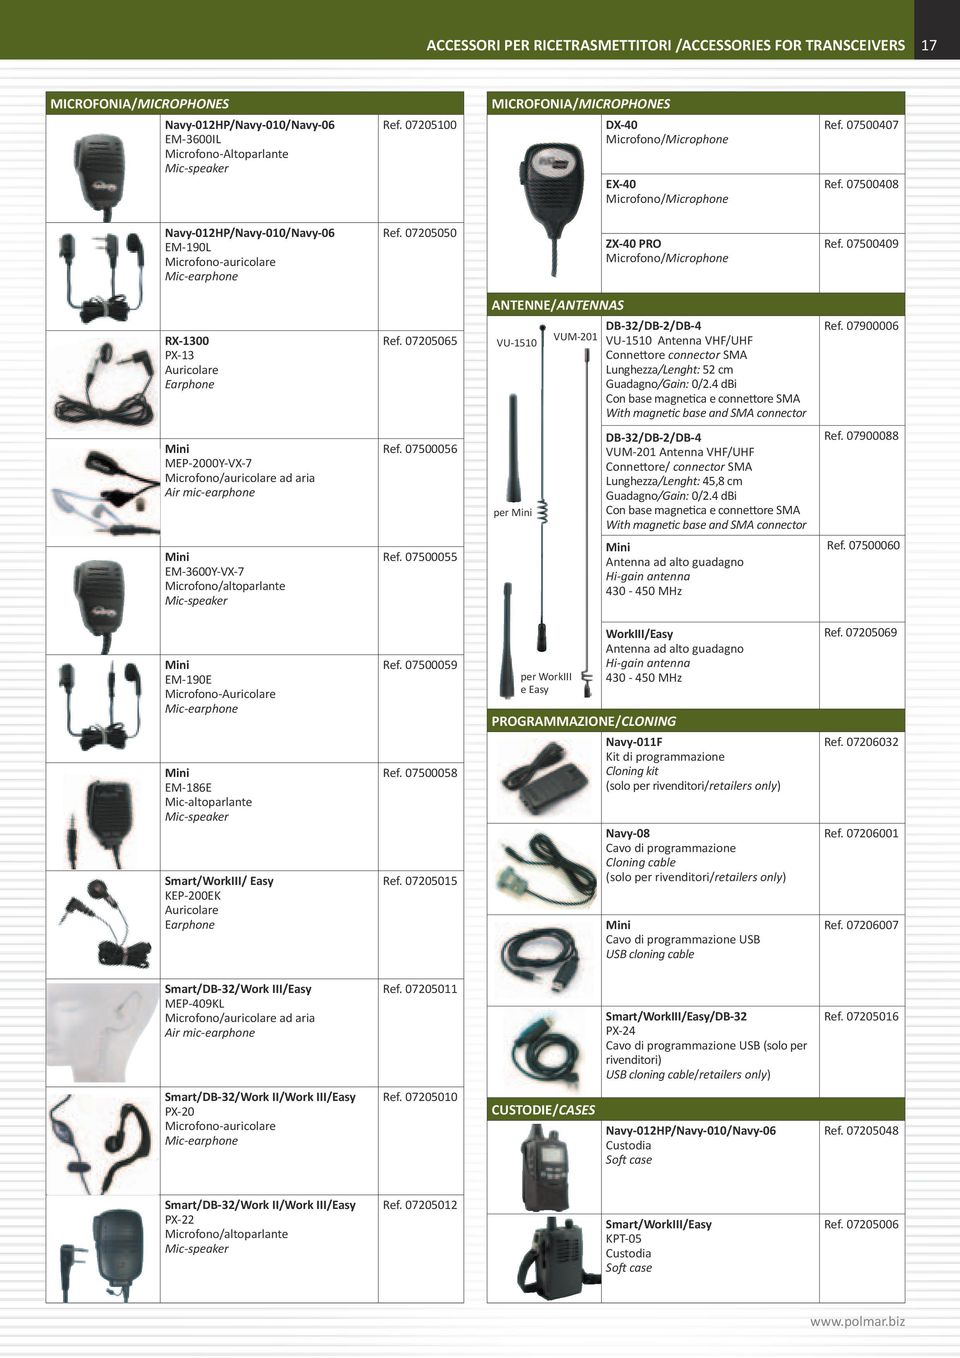 07205050 ZX-40 PRO Microfono/Microphone Ref. 07500409 ANTENNE/ANTENNAS RX-1300 PX-13 Auricolare Earphone Ref.